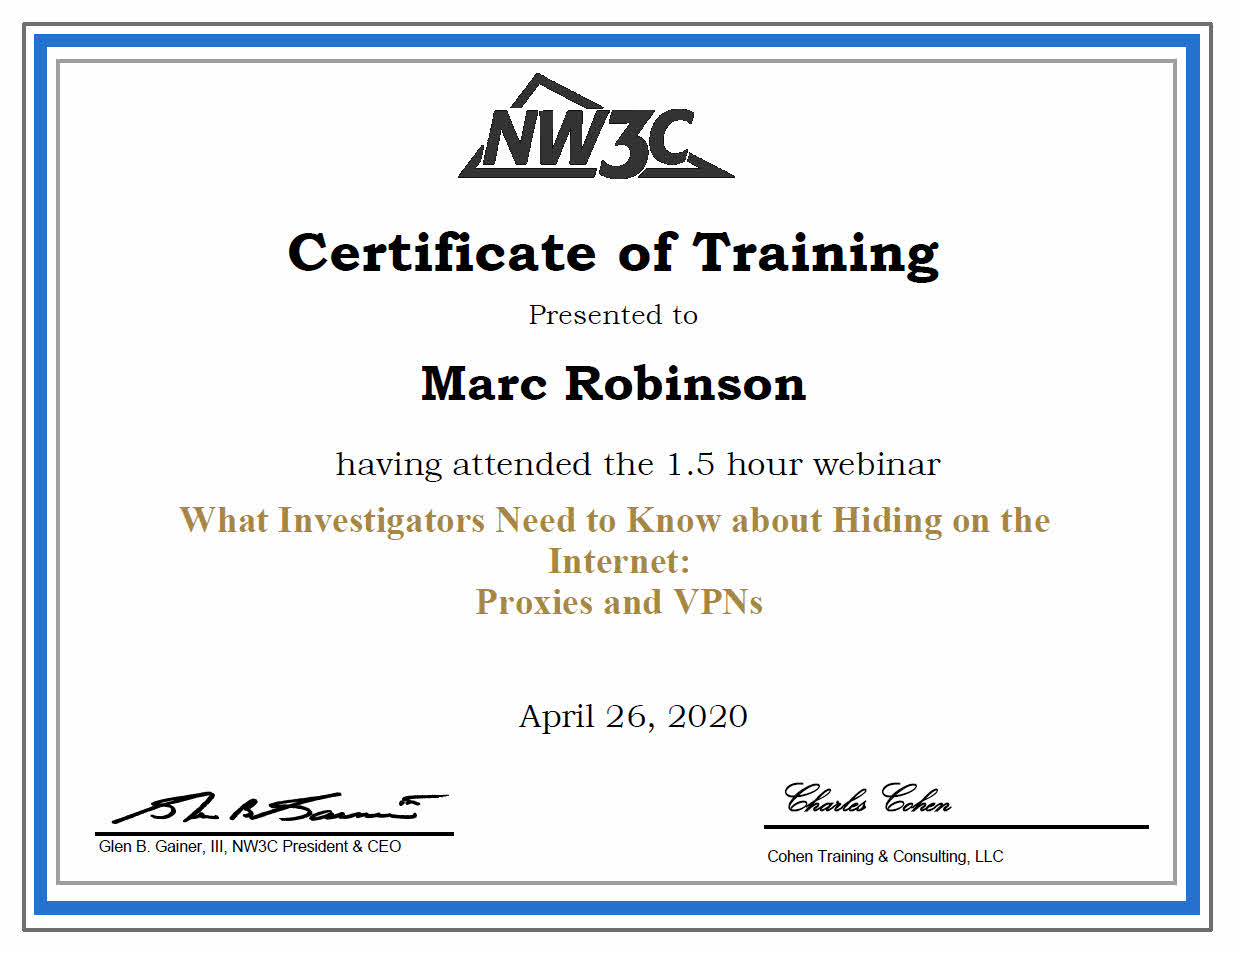 NW3c Training Certificate on Proxies and VPNs  for Marc Robinson